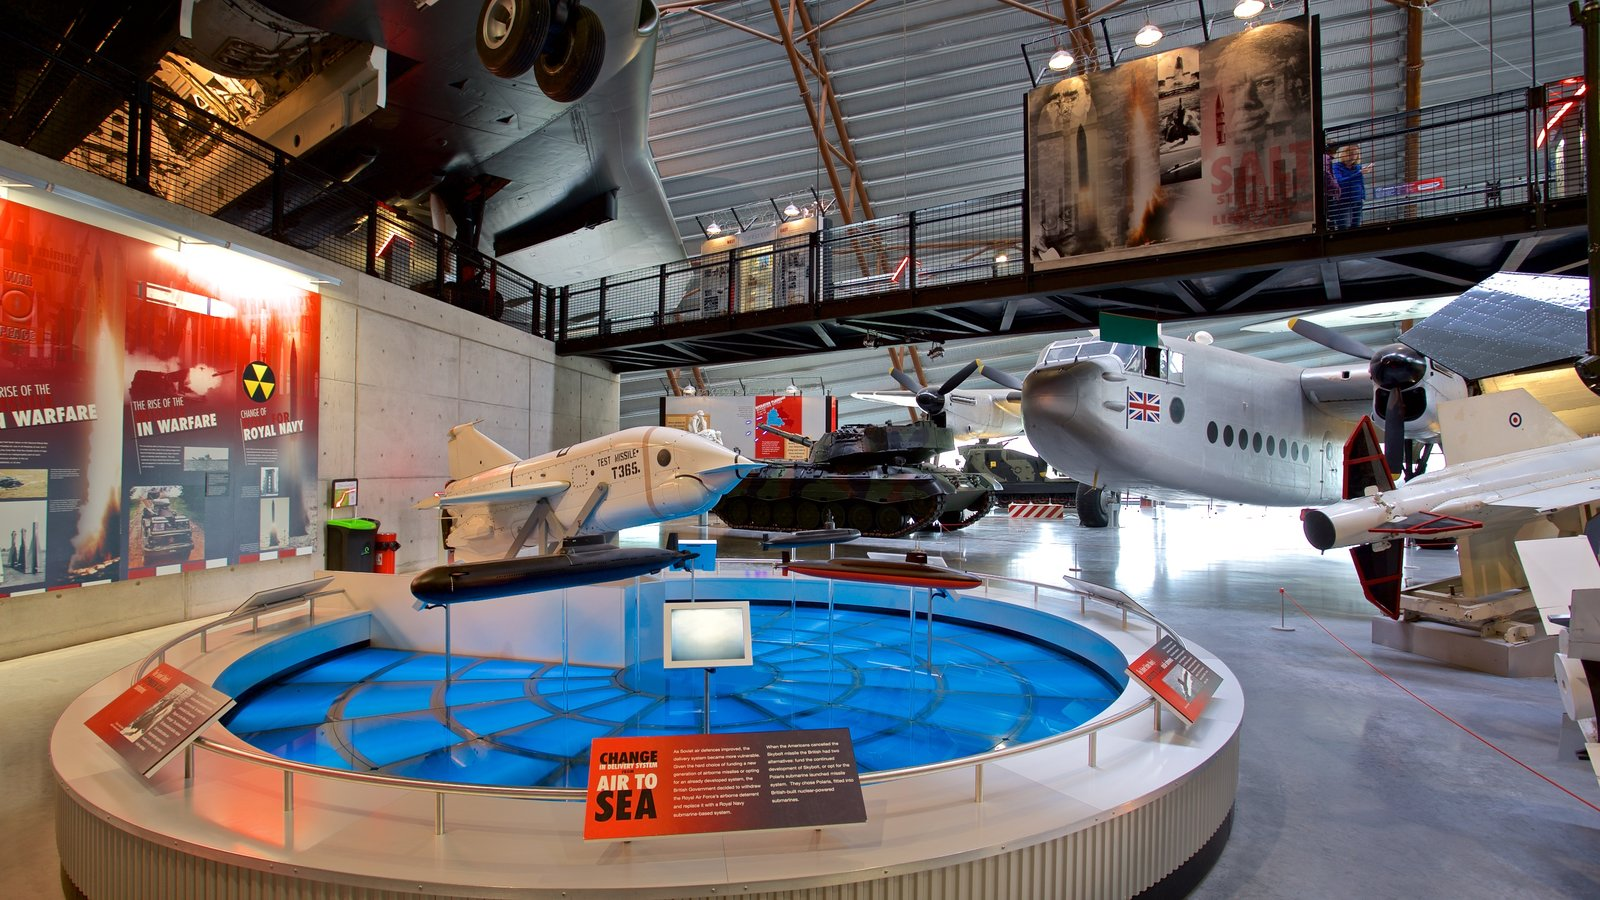 Cosford Royal Air Force Museum showing aircraft and interior views